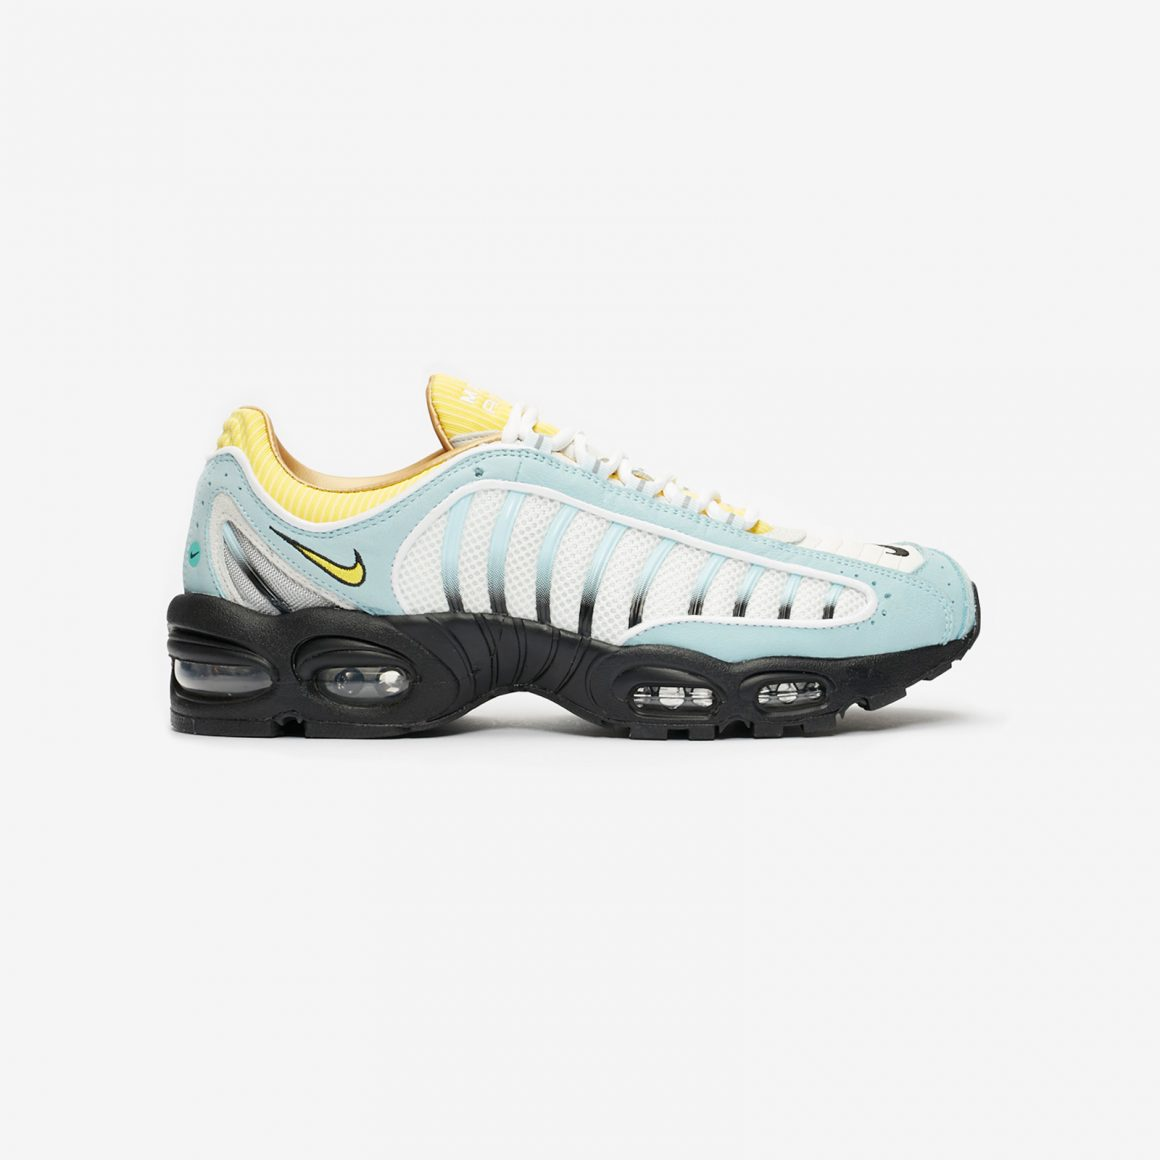 Nike Air Max Tailwind IV ''20th Anniversary''